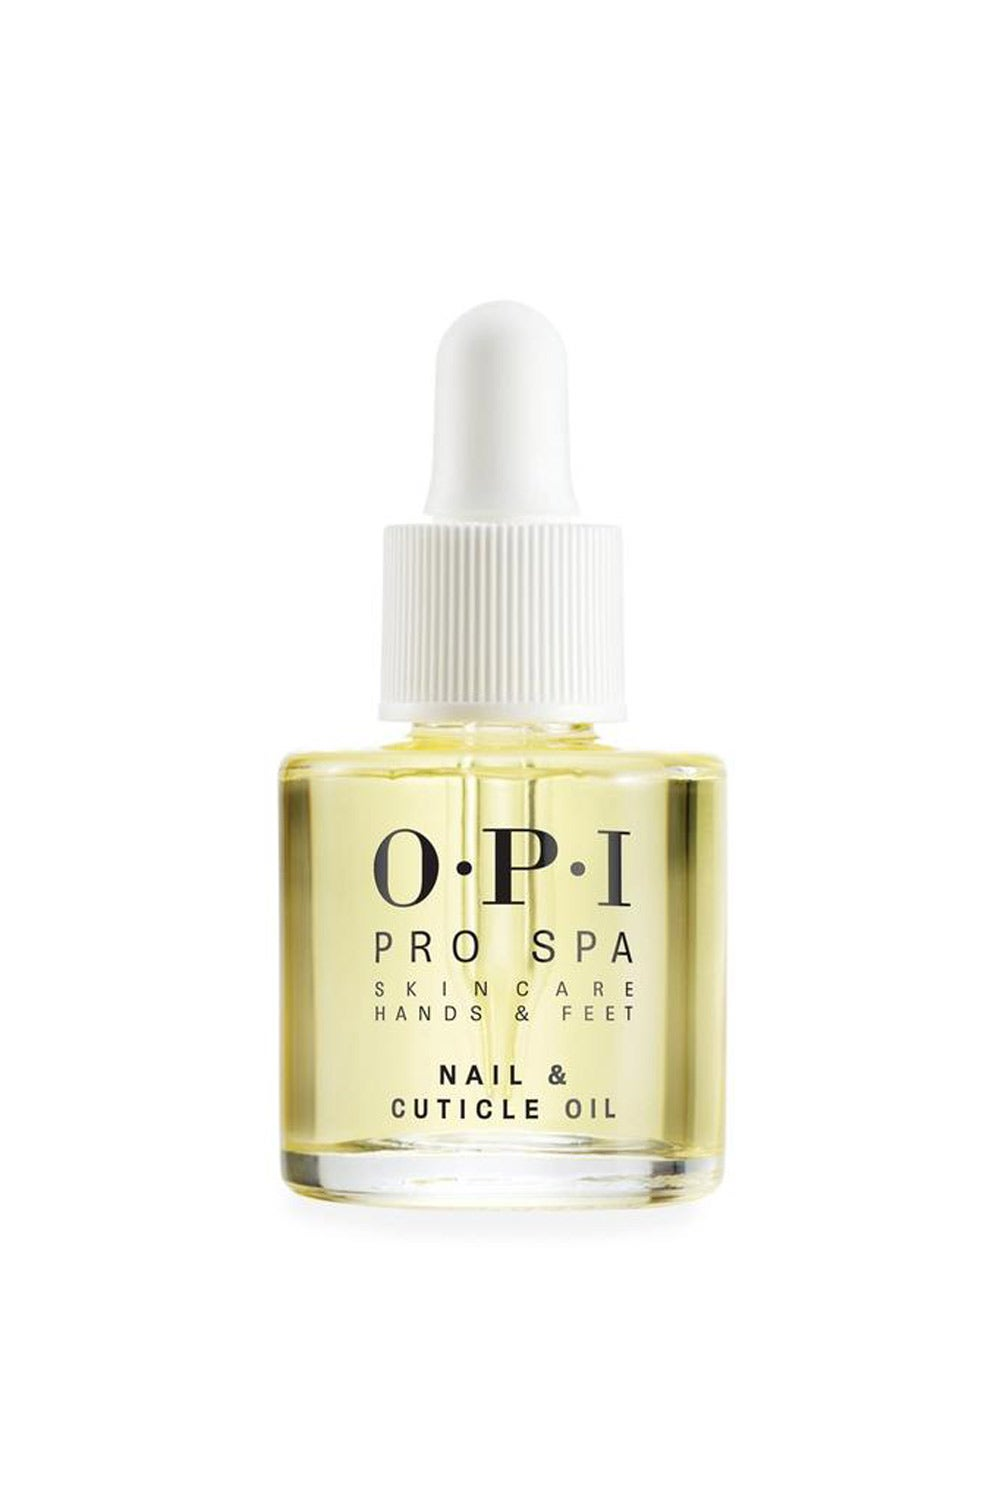 OPI Nail and Cuticle Oil Nail Treatment for Cancer Patients